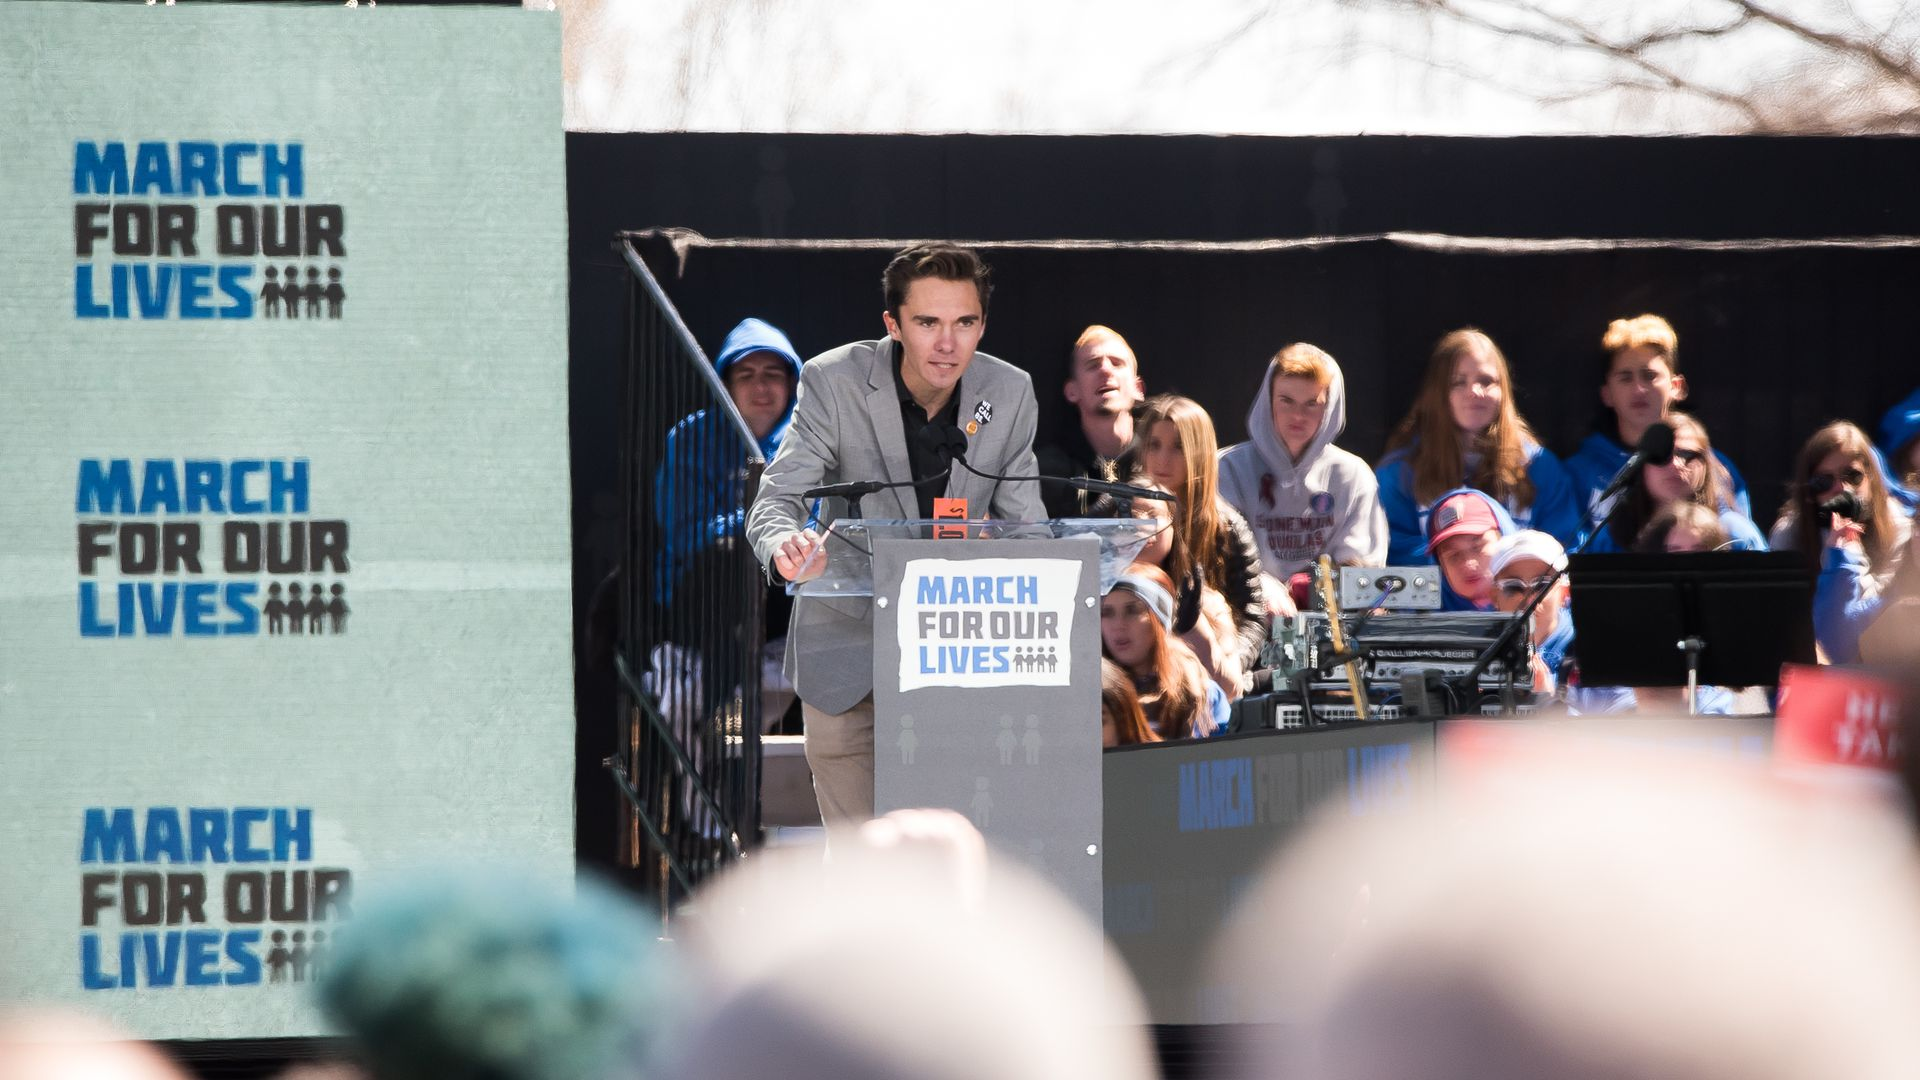 David Hogg at the March for Our Lives